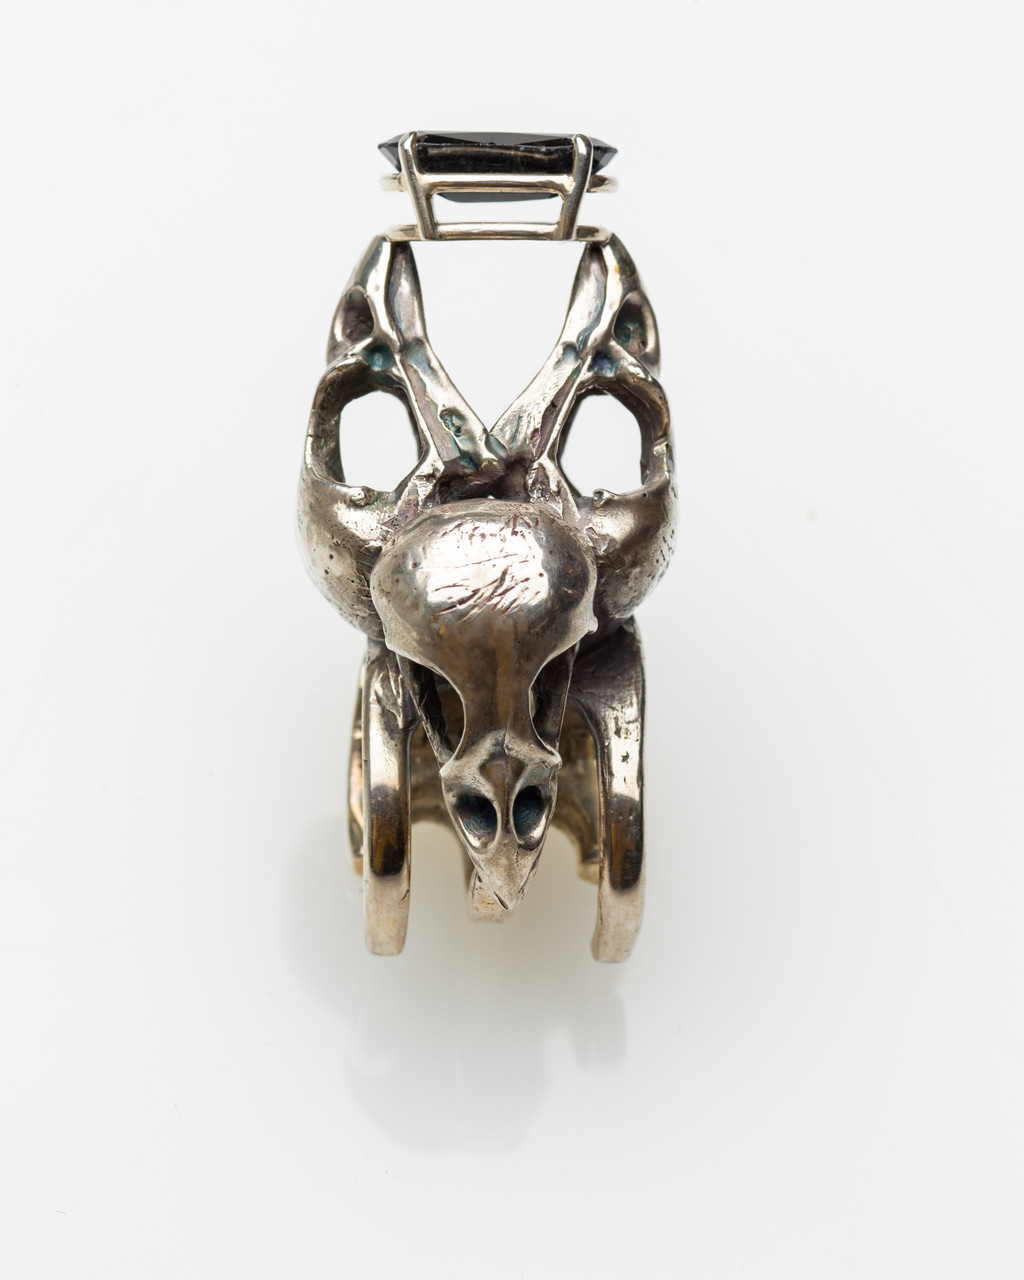 Sparrow Skull (Hairclip), sterling silver, corundum sculpture by Lucas Pointon.